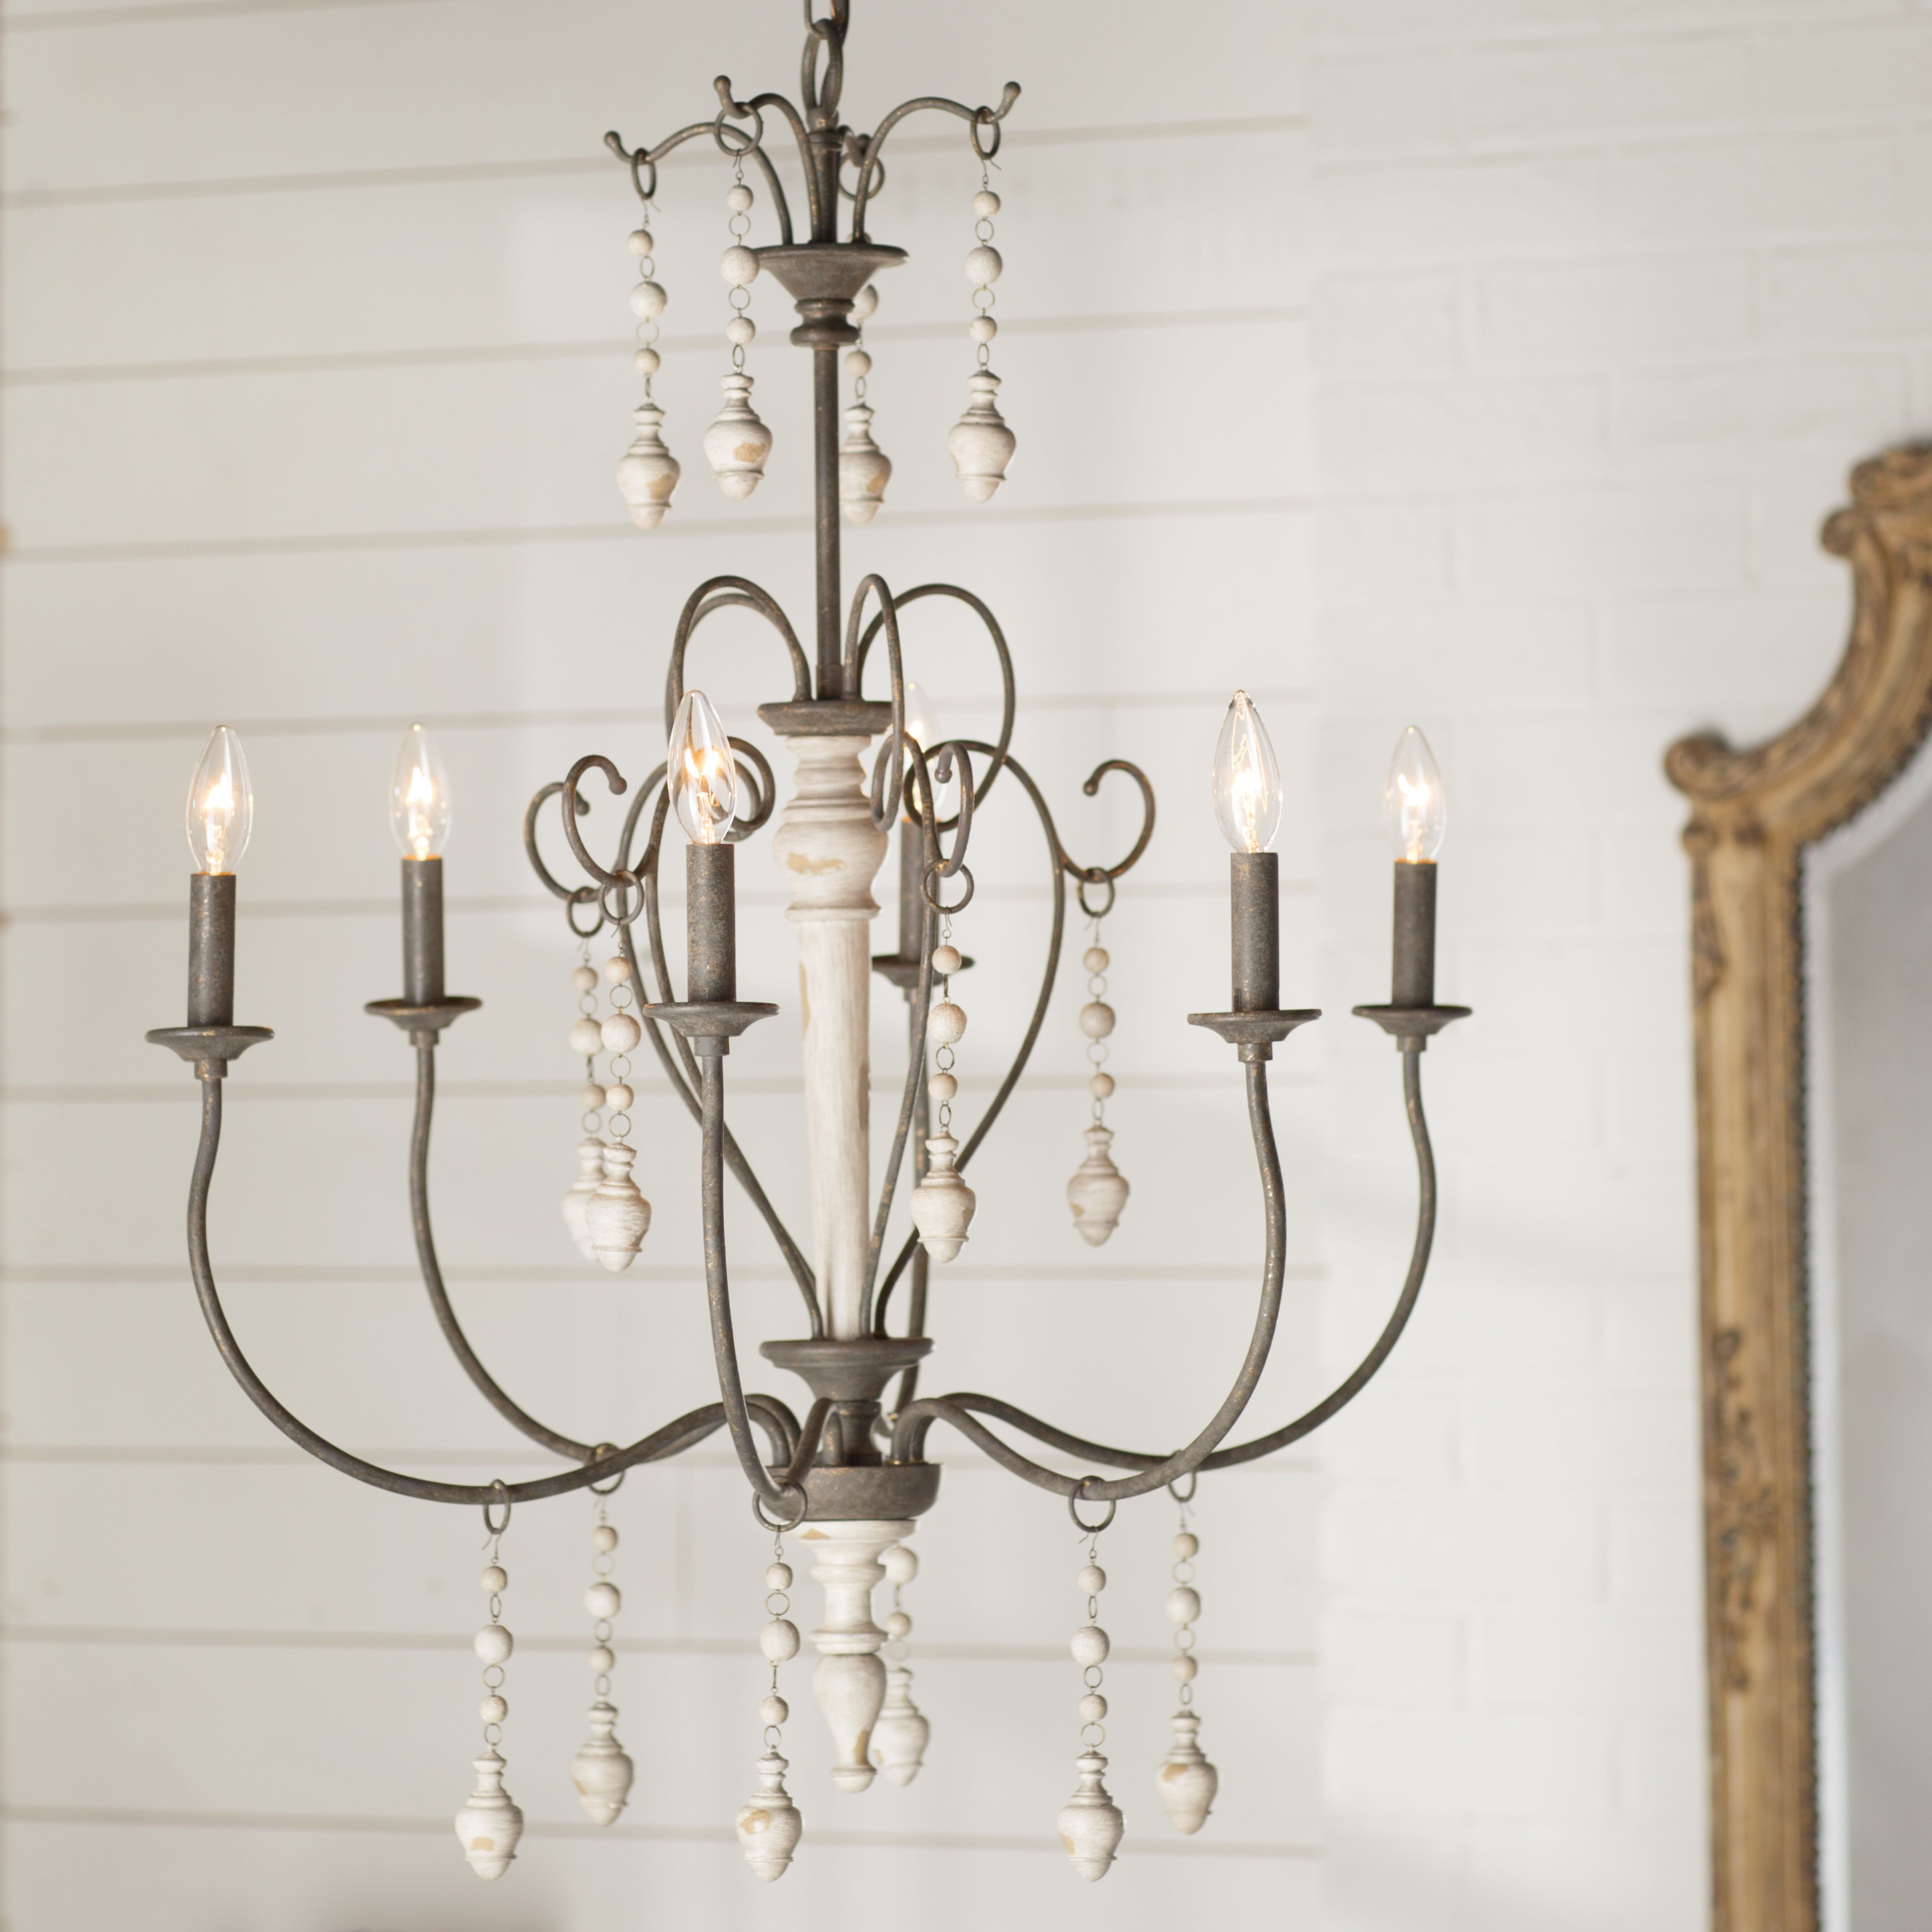 Bouchette Traditional 6 Light Candle Style Chandelier Throughout Newest Corneau 5 Light Chandeliers (View 2 of 25)